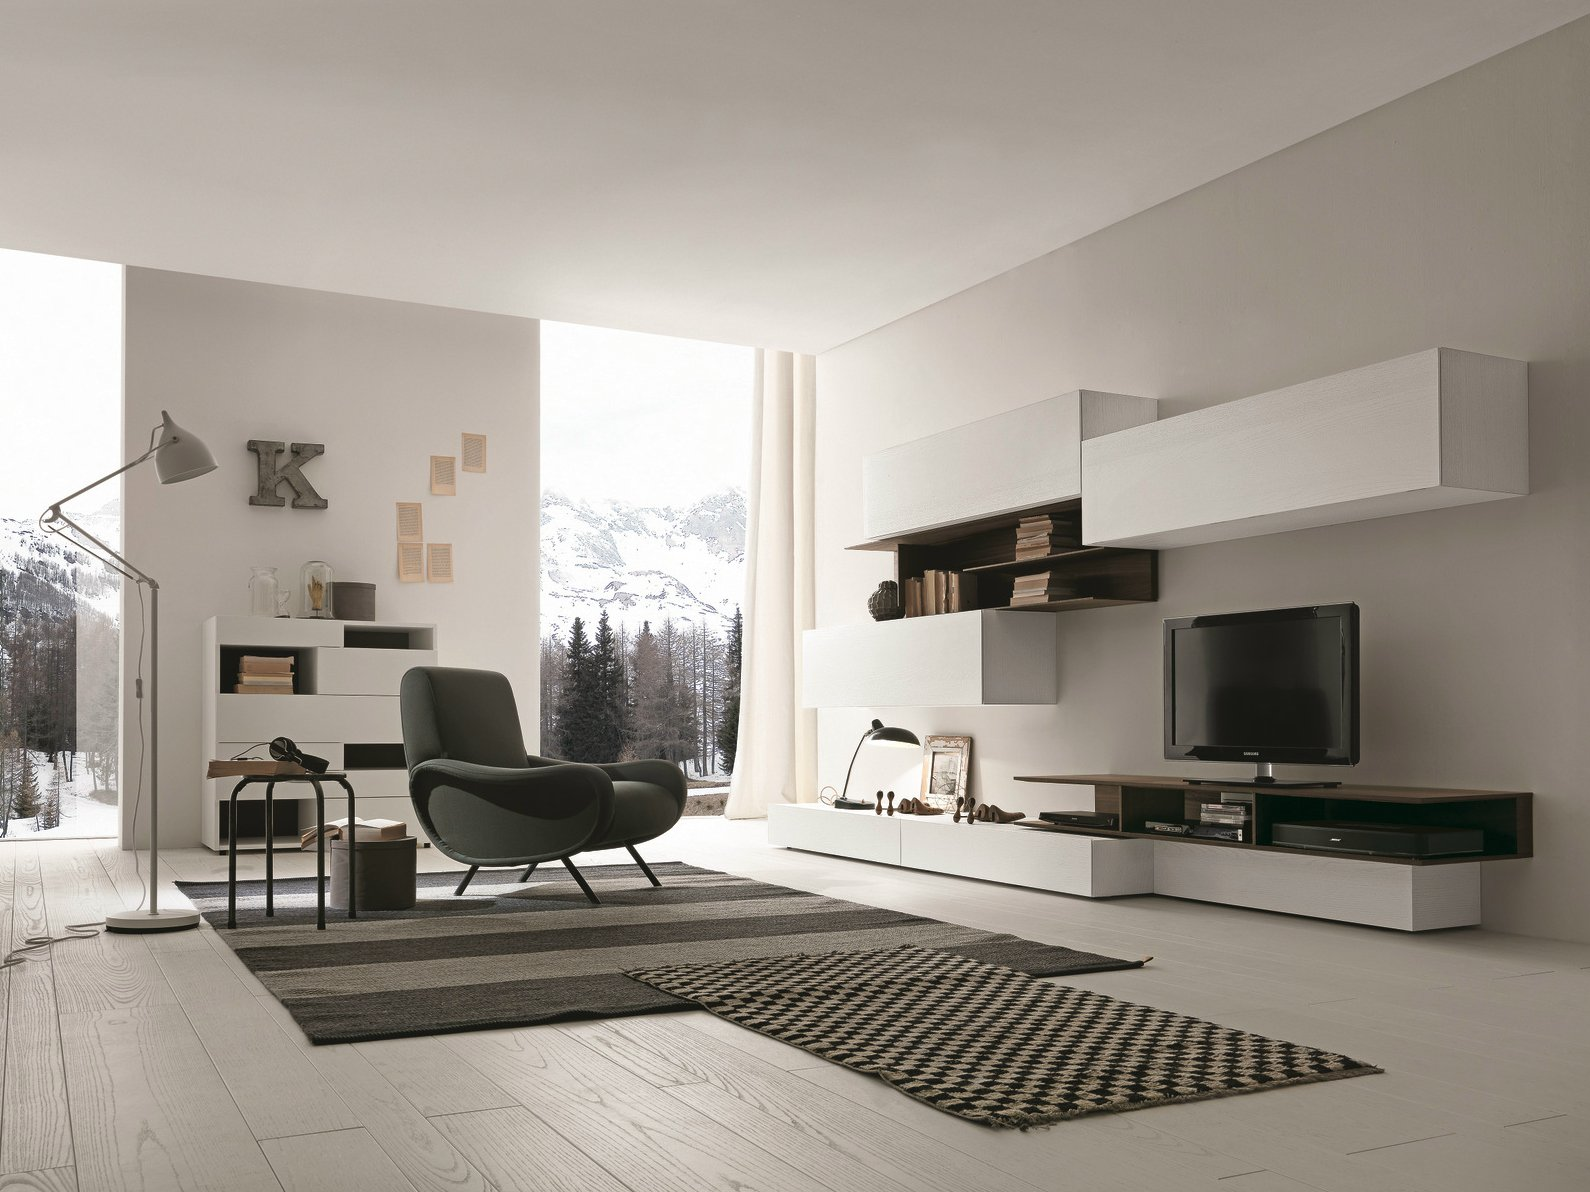 Ensemble mural composable fixation mural avec support tv i modulart 270a by presotto industrie - Mobili brugnera ...